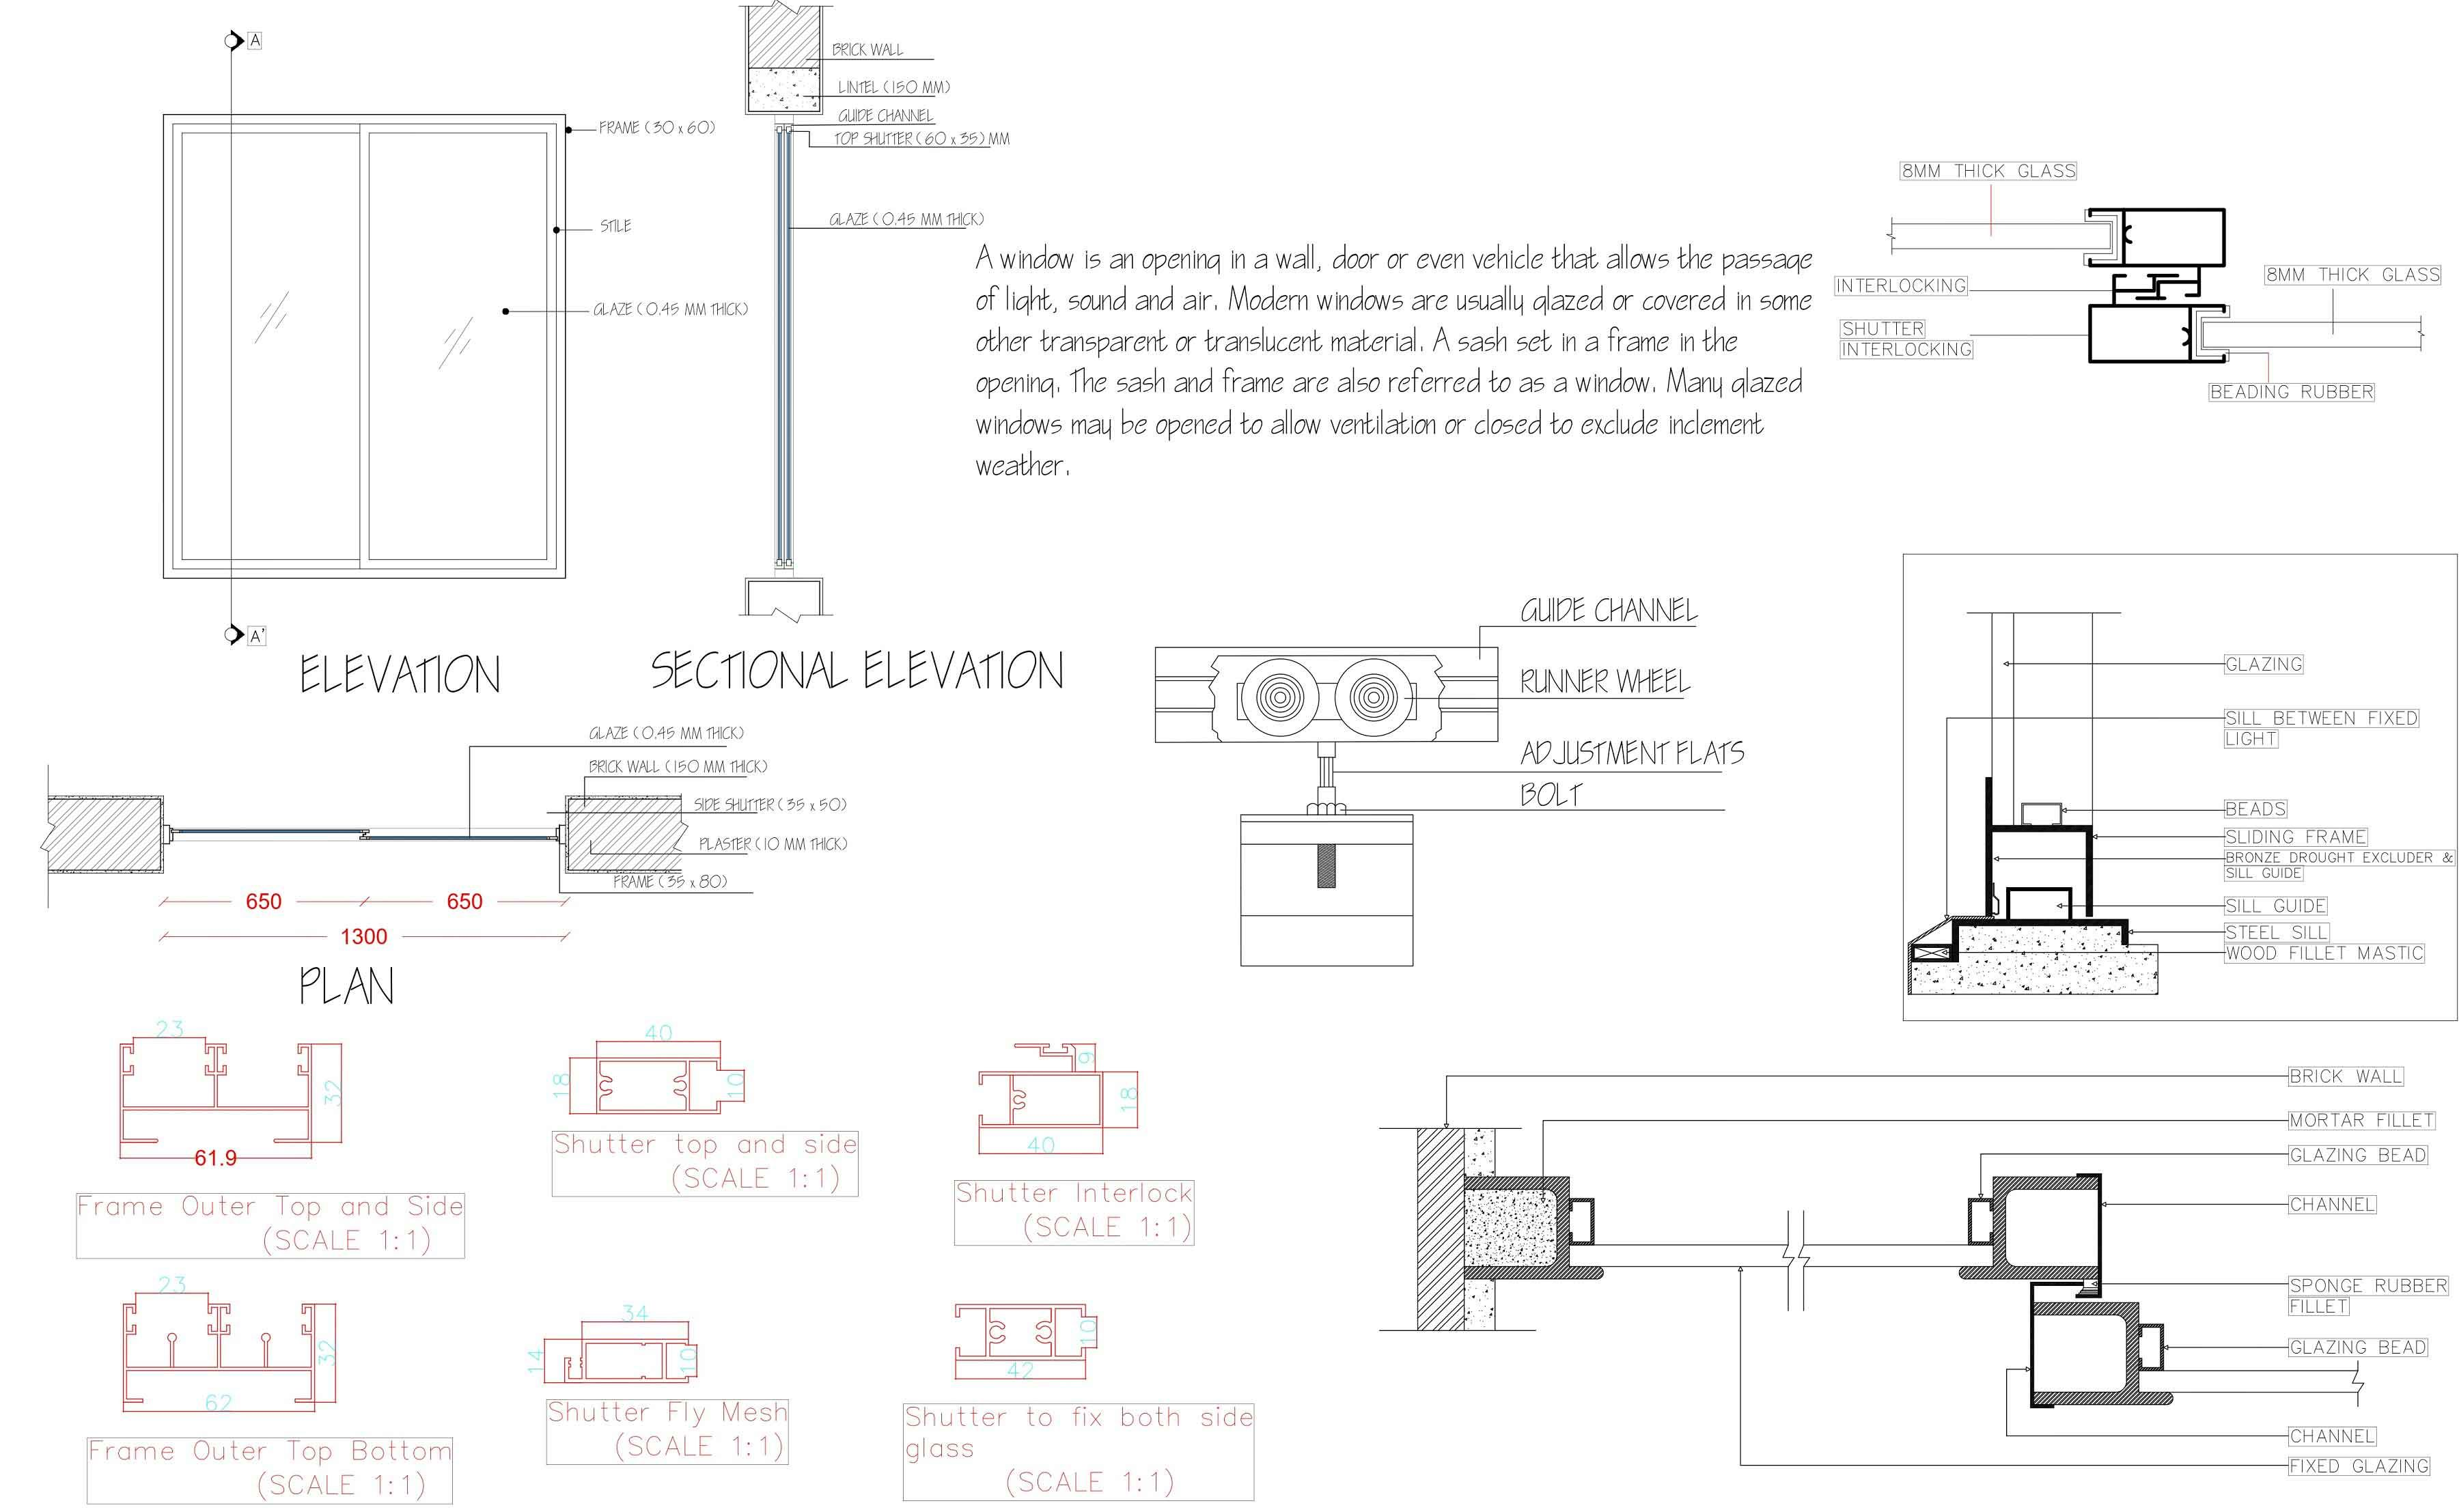 Sliding Window Plan Elevations Sections With All Fixing Details In 2021 How To Plan Sliding Windows Windows